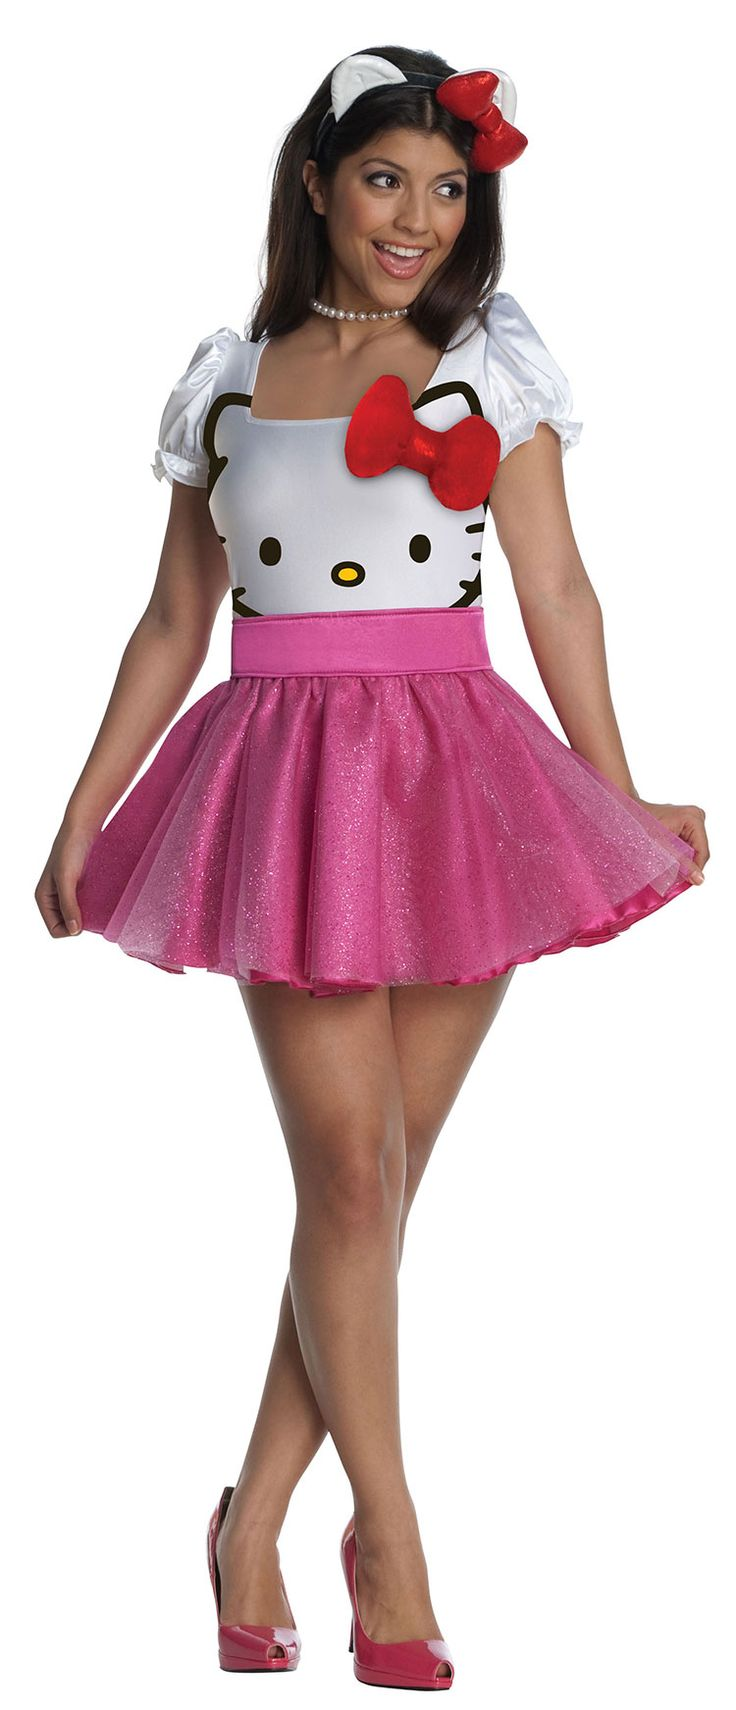 is it bad that i would wear this hello kitty halloween costume as a normal outfit?